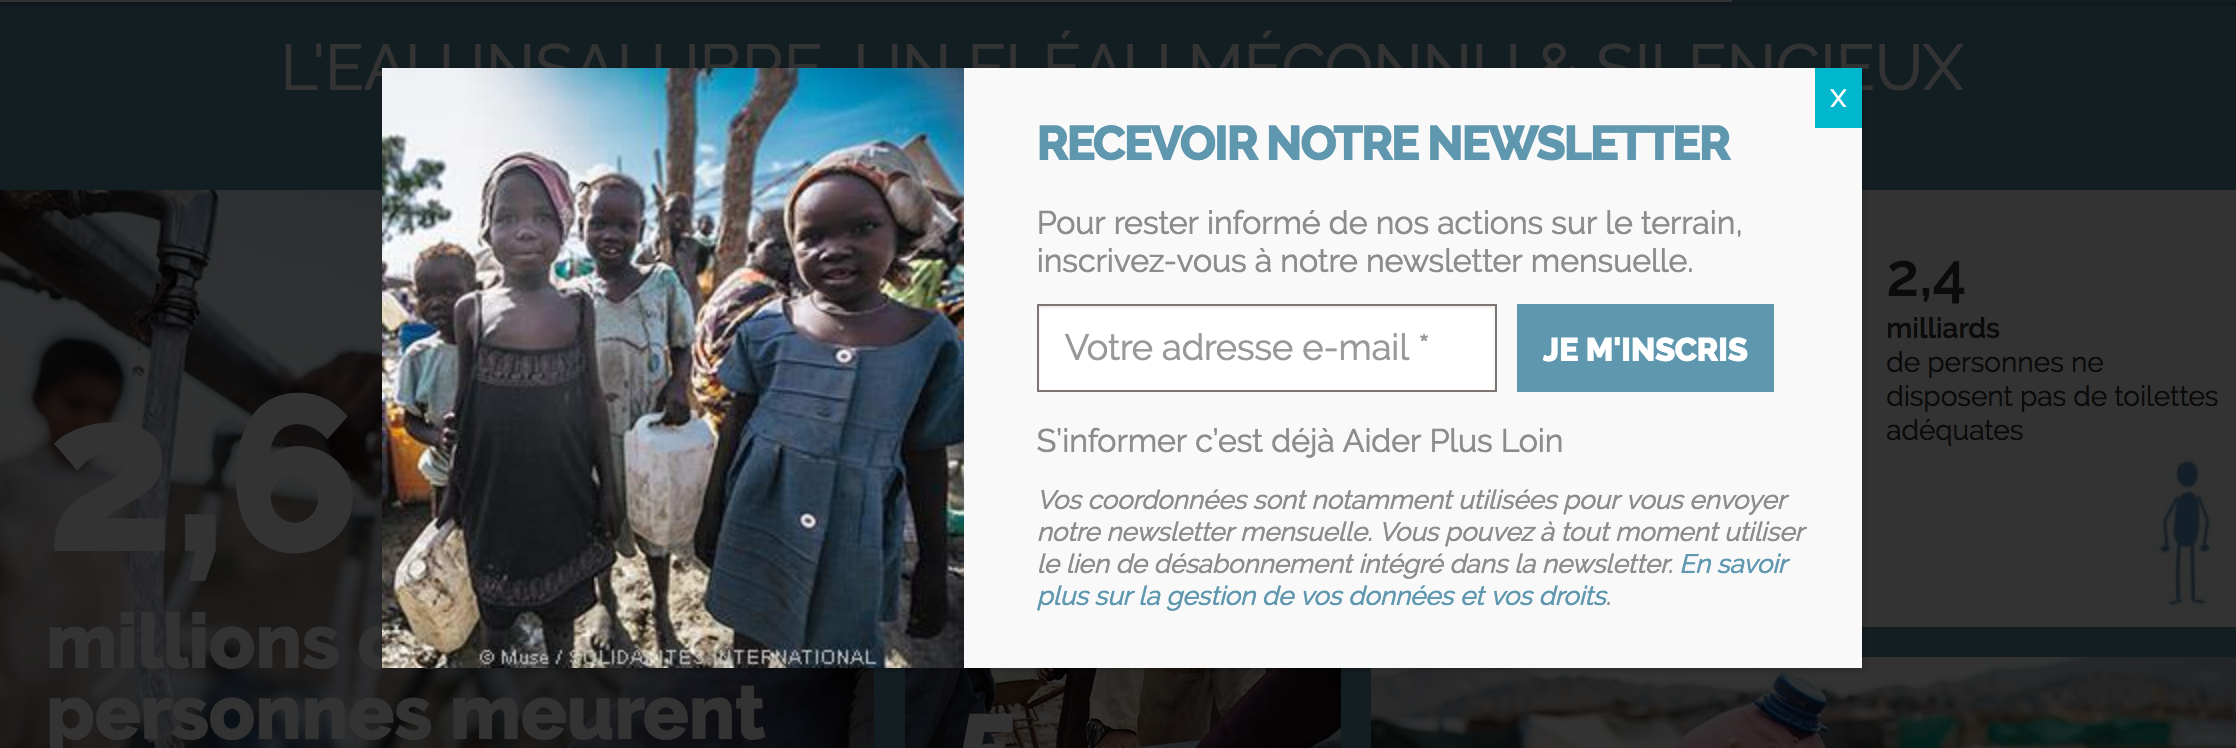 Pop-up d'abonnement à la newsletter Solidarités international